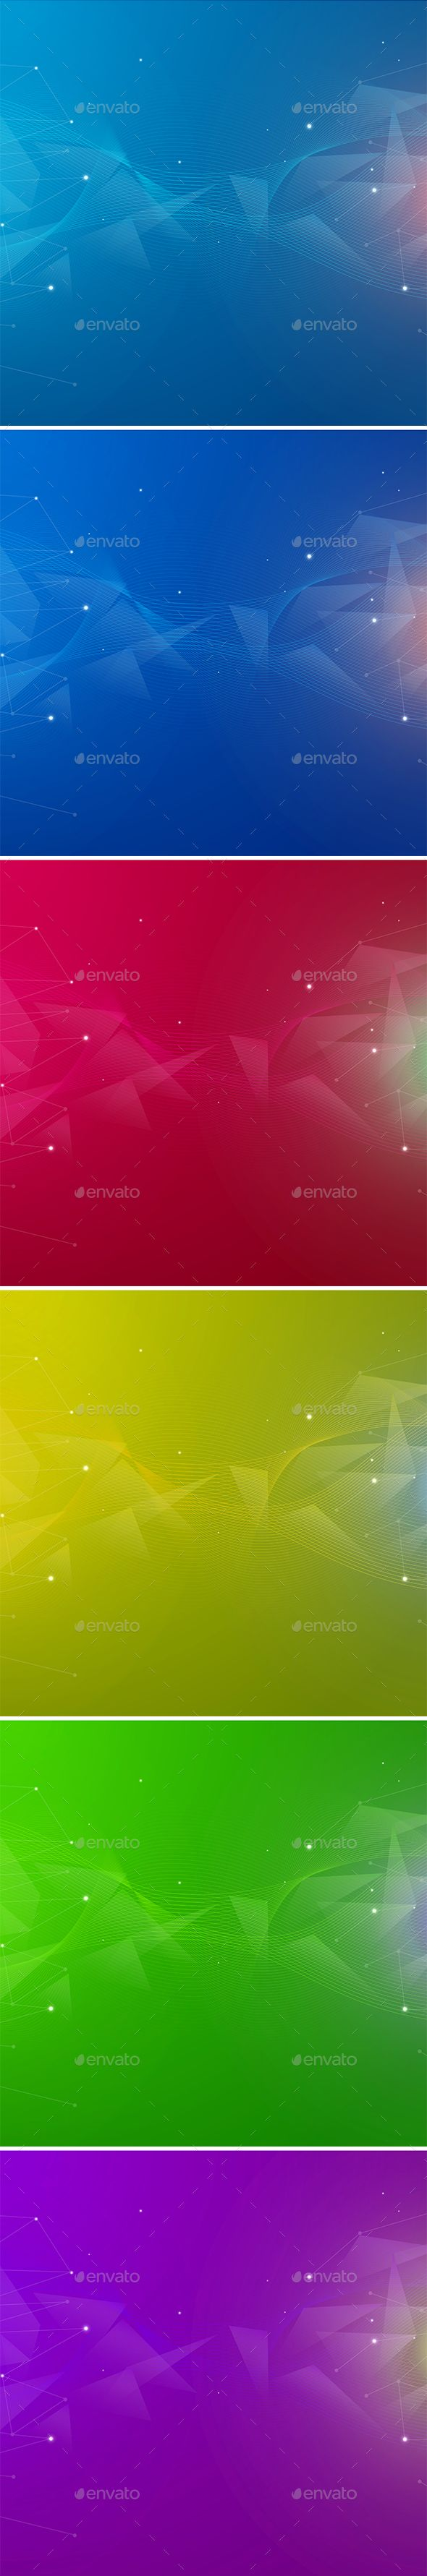 abstract backgrounds hd graphic design graphics pinterest also rh